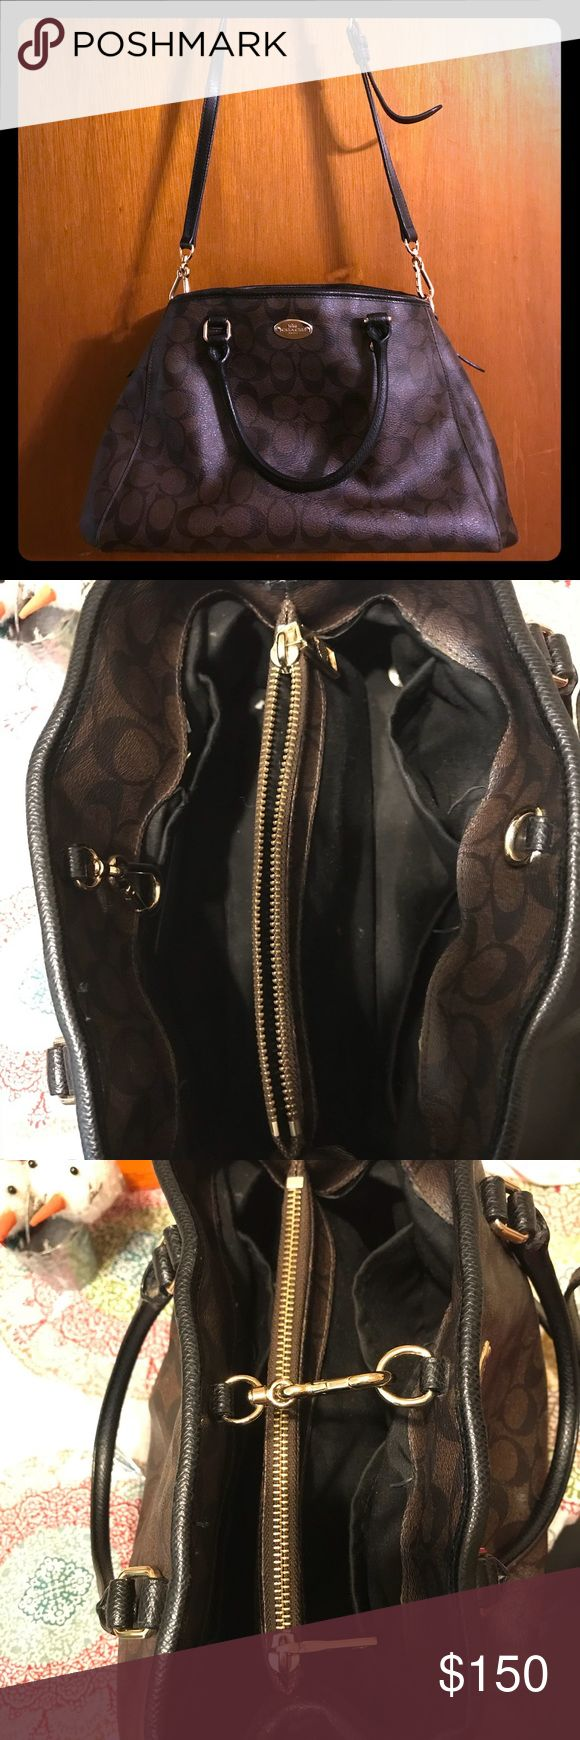 Leather Coach purse Sturdy brown leather Coach bag with gold accessories. Double section divided by a zipper pocket. Two small pockets on one side and a larger pocket on the other. No blemishes on the outside. Has very little wear on the inside just lint. In very good condition. Coach Bags Satchels